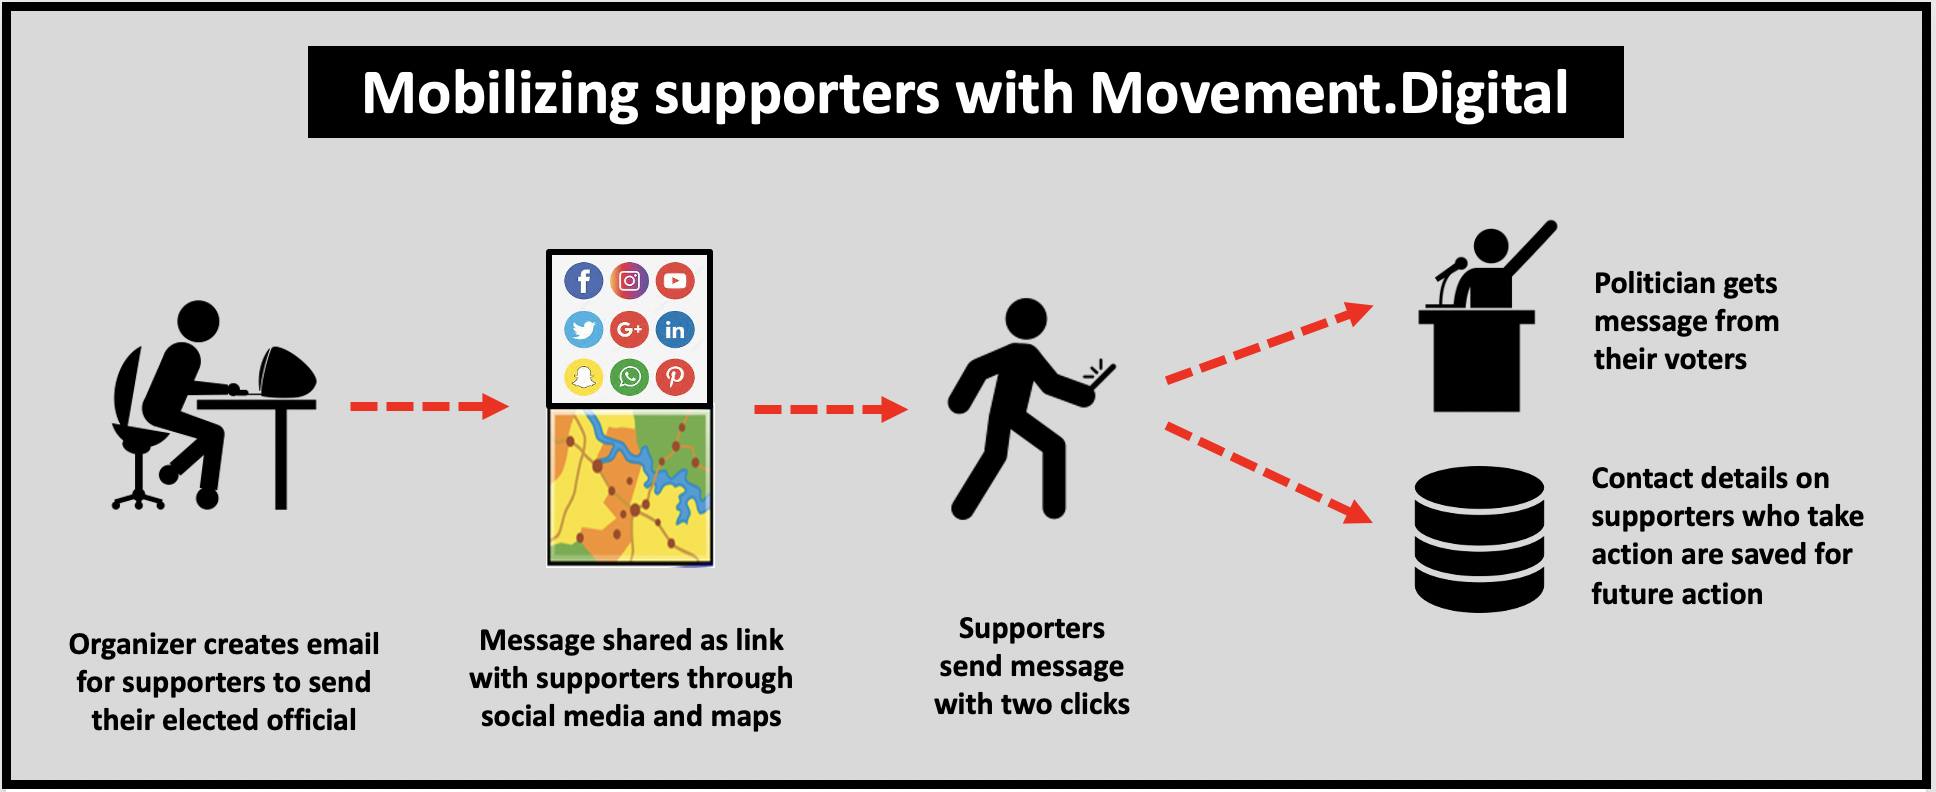 Mobilize supporters to contact their elected officials with Movement.Digital